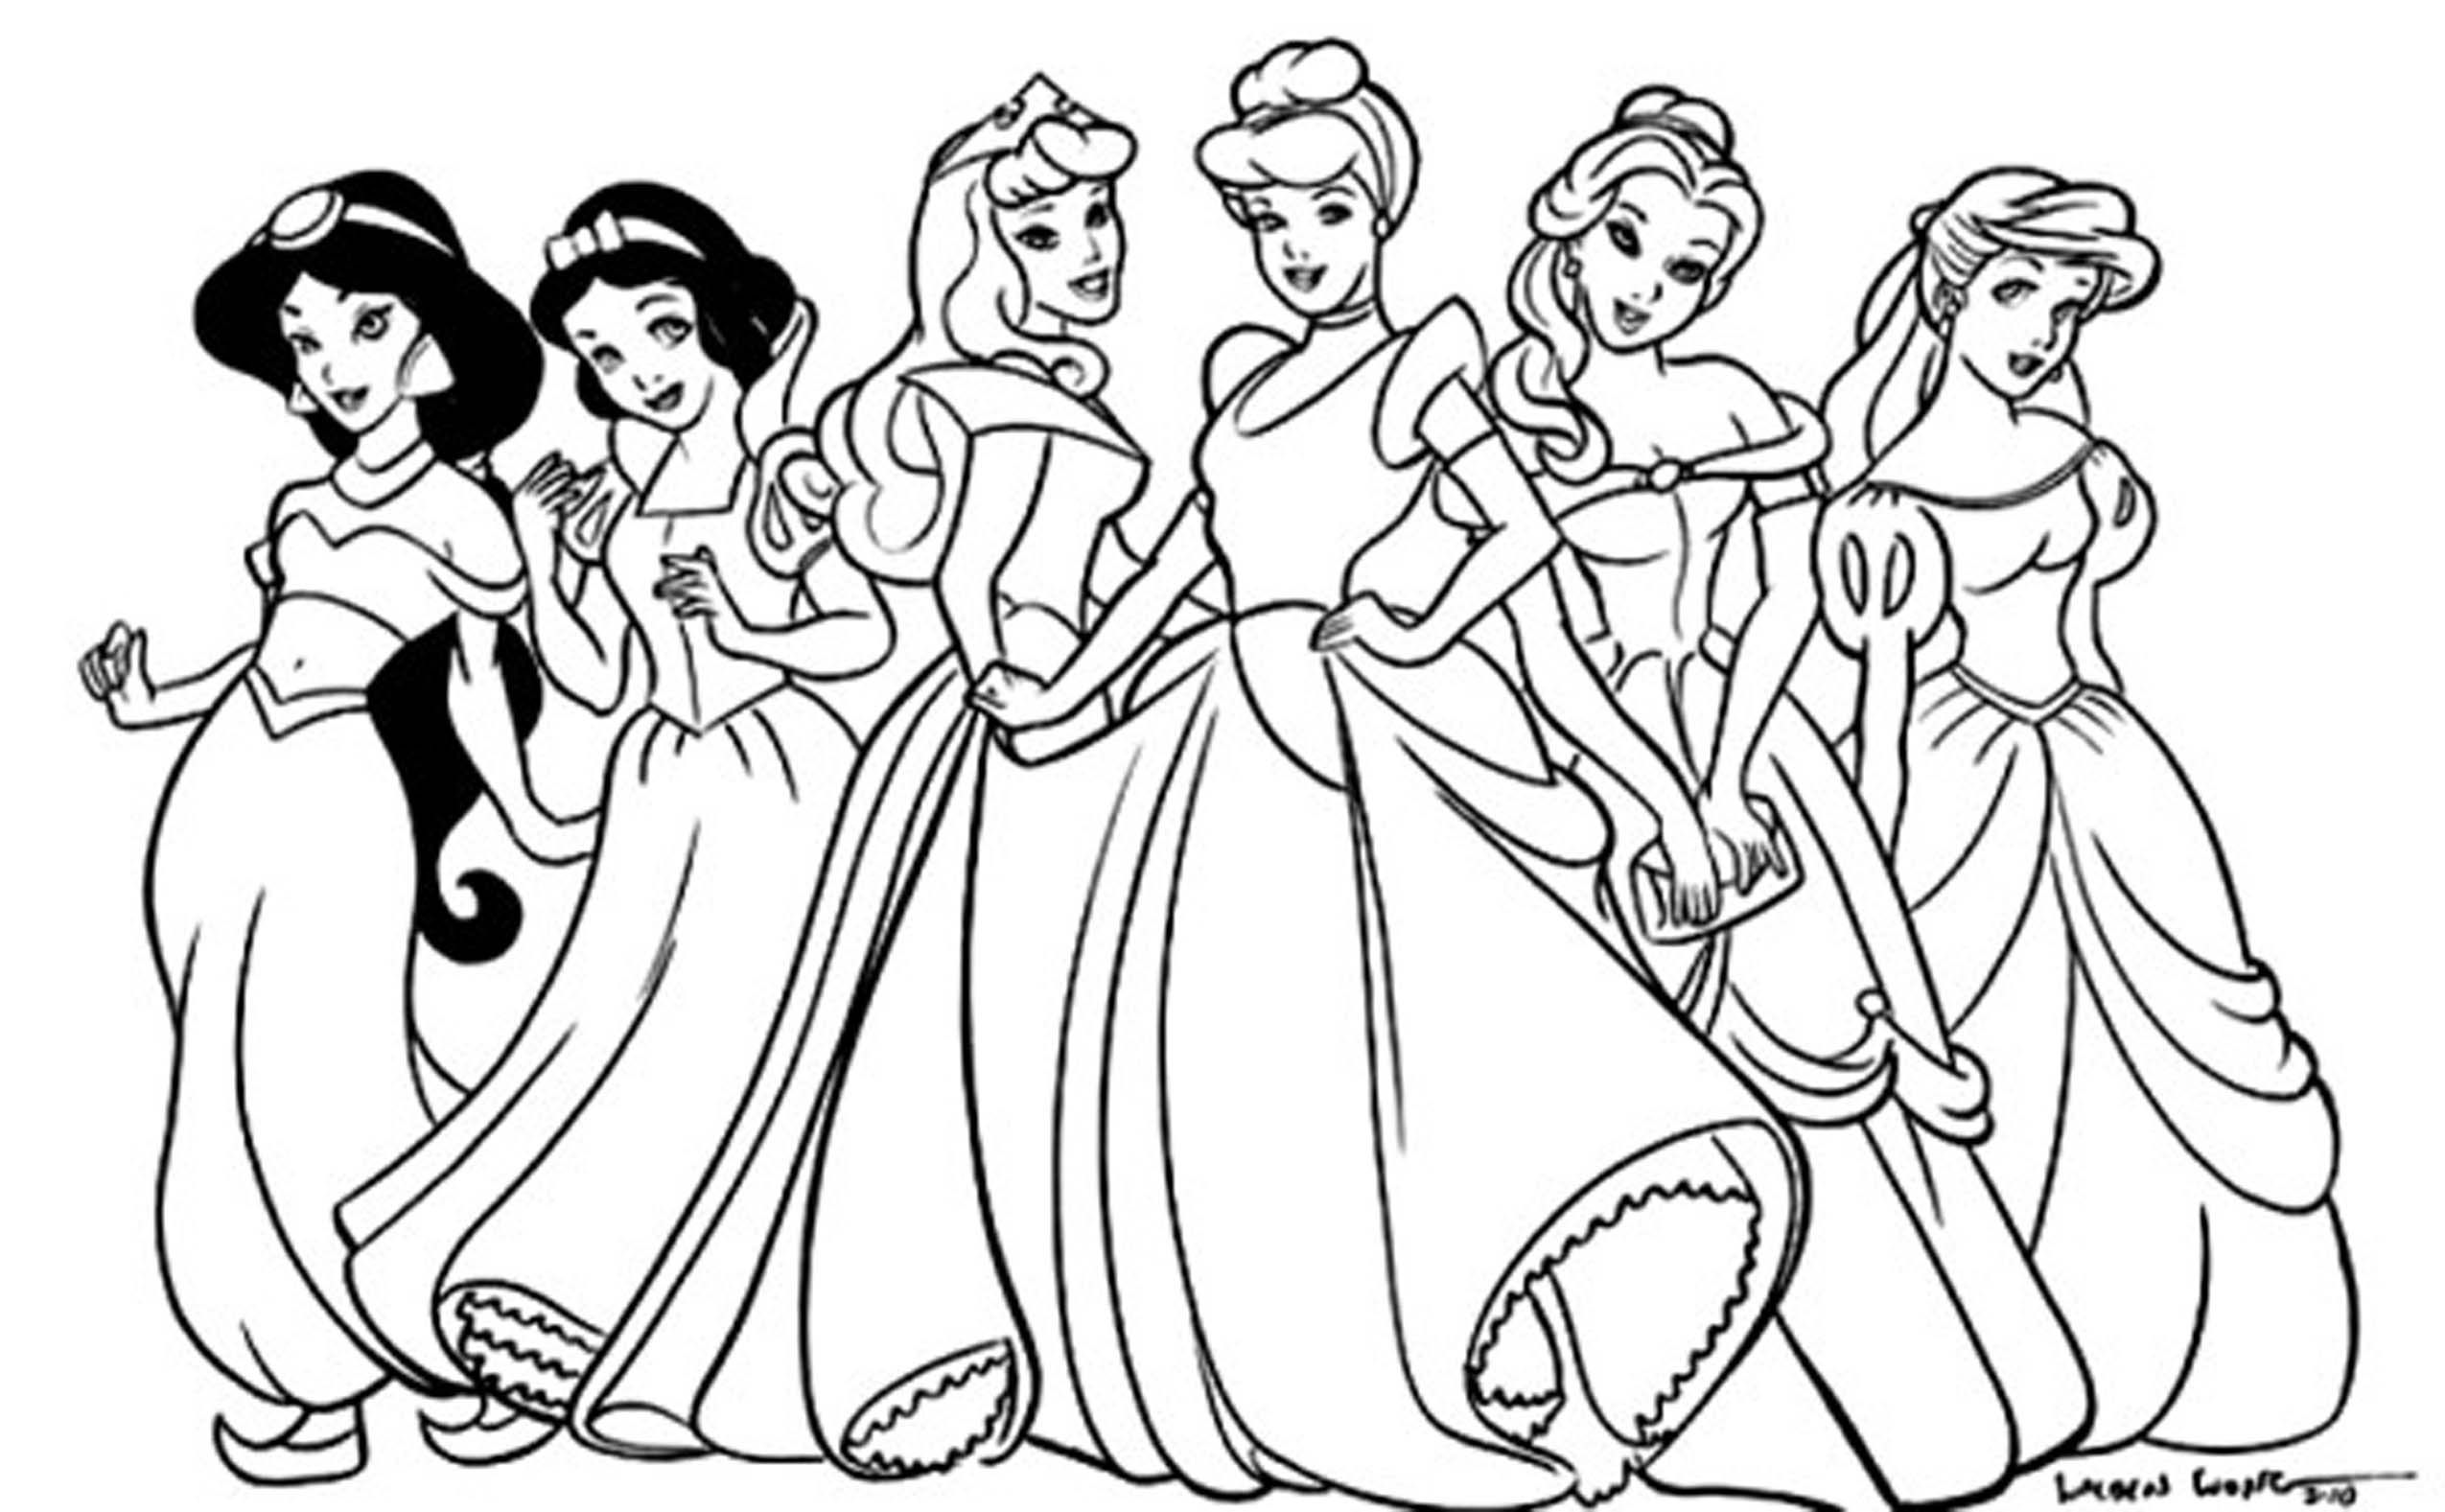 Disney Princess Printable Colouring Pages Princess Coloring Pages Disney Princess Coloring Pages Belle Coloring Pages